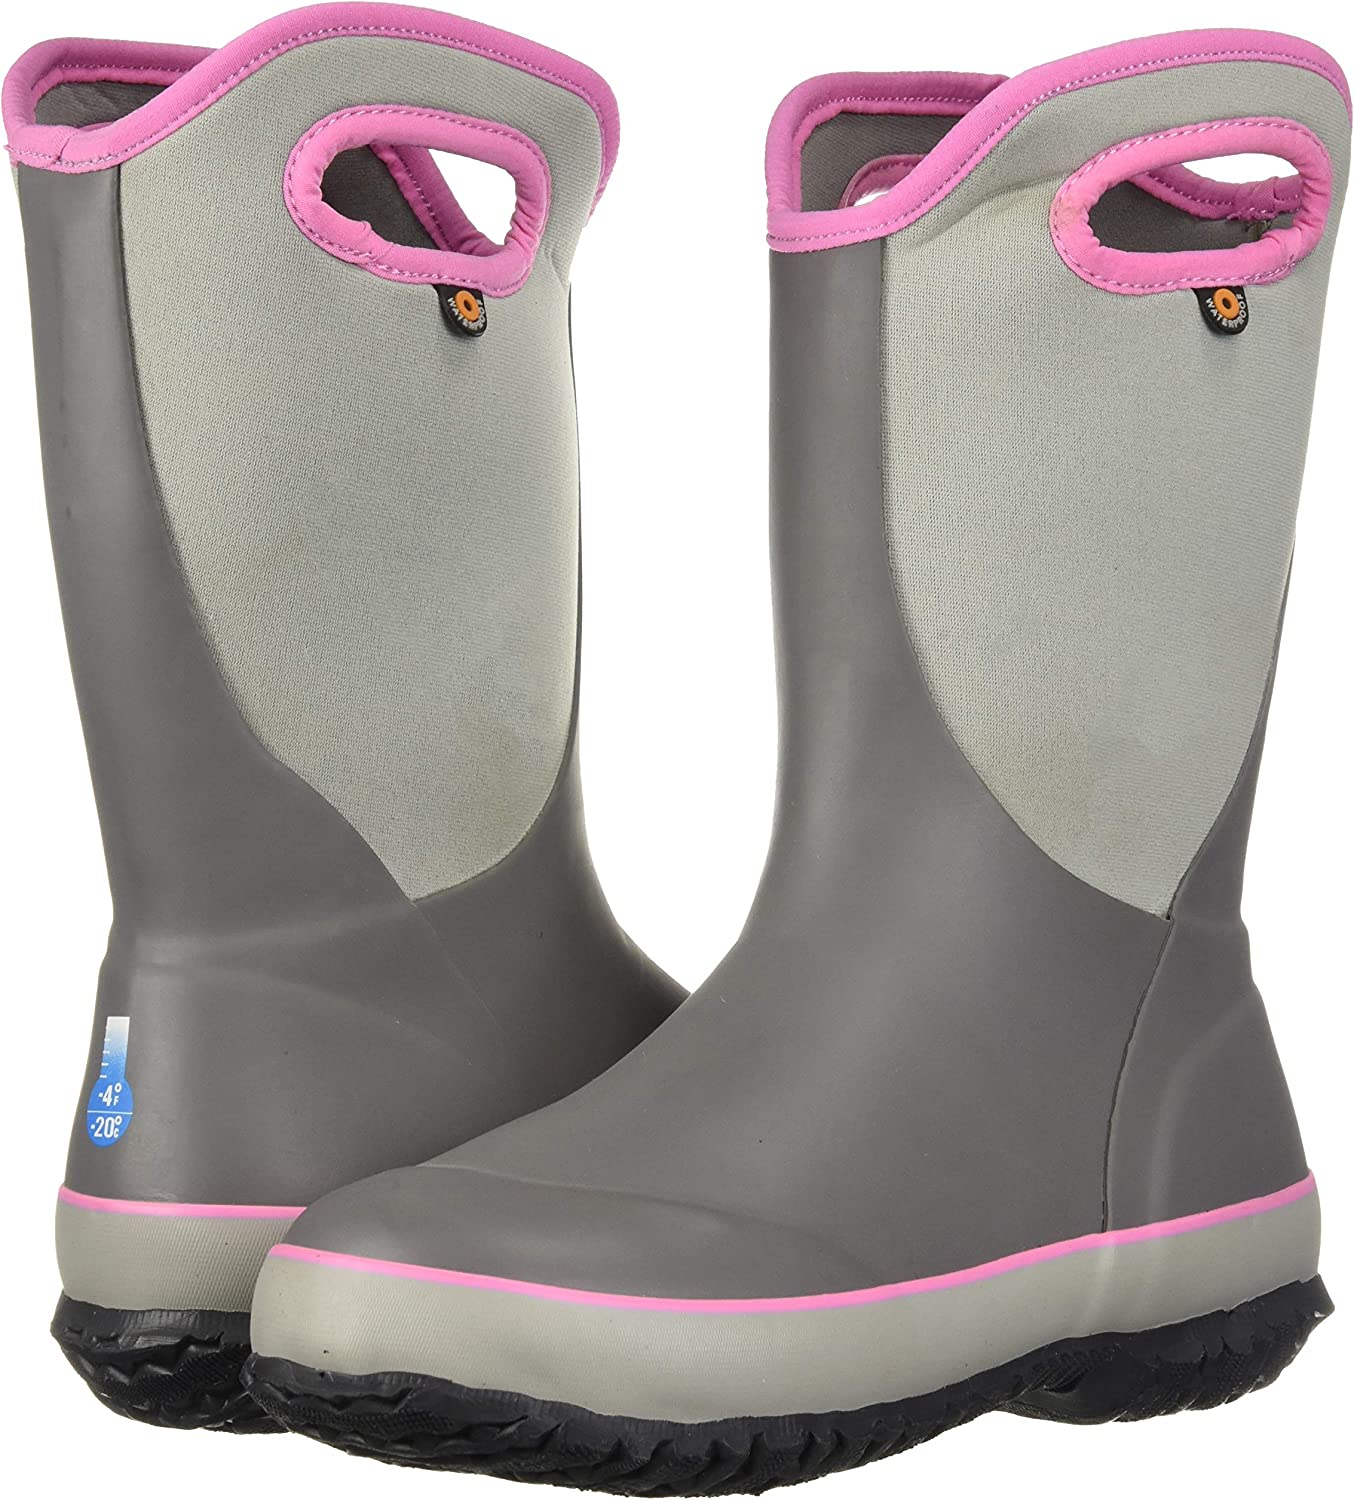 BOGS Kids Slushie Solid Insulated Rain Boots